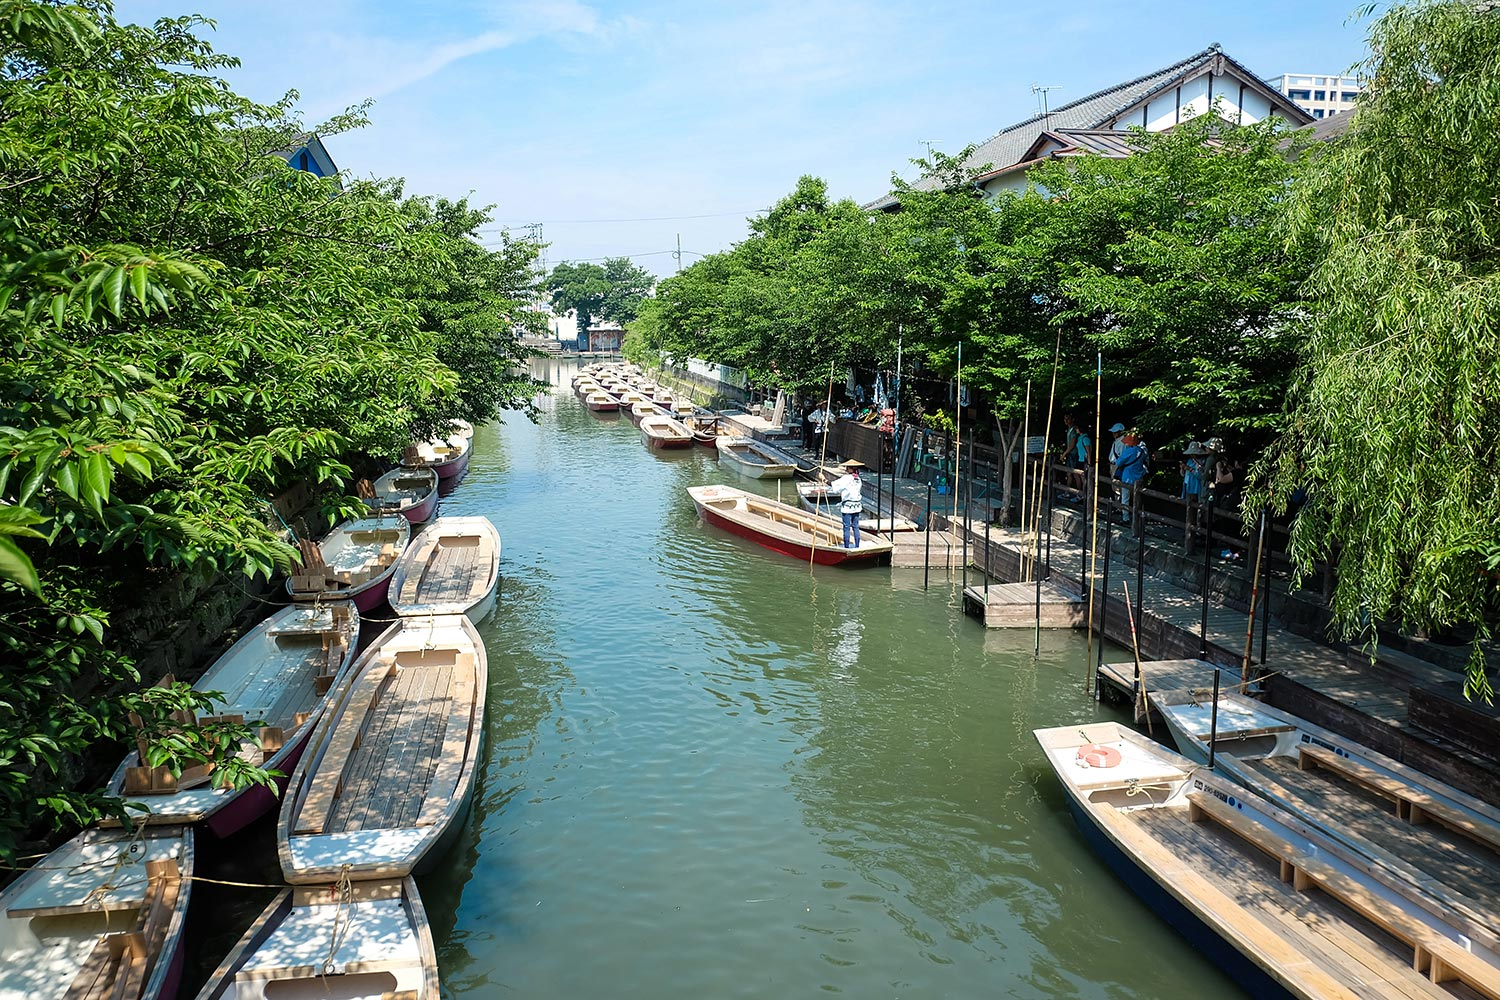 Small boats along the deck in a Fukuoka canal